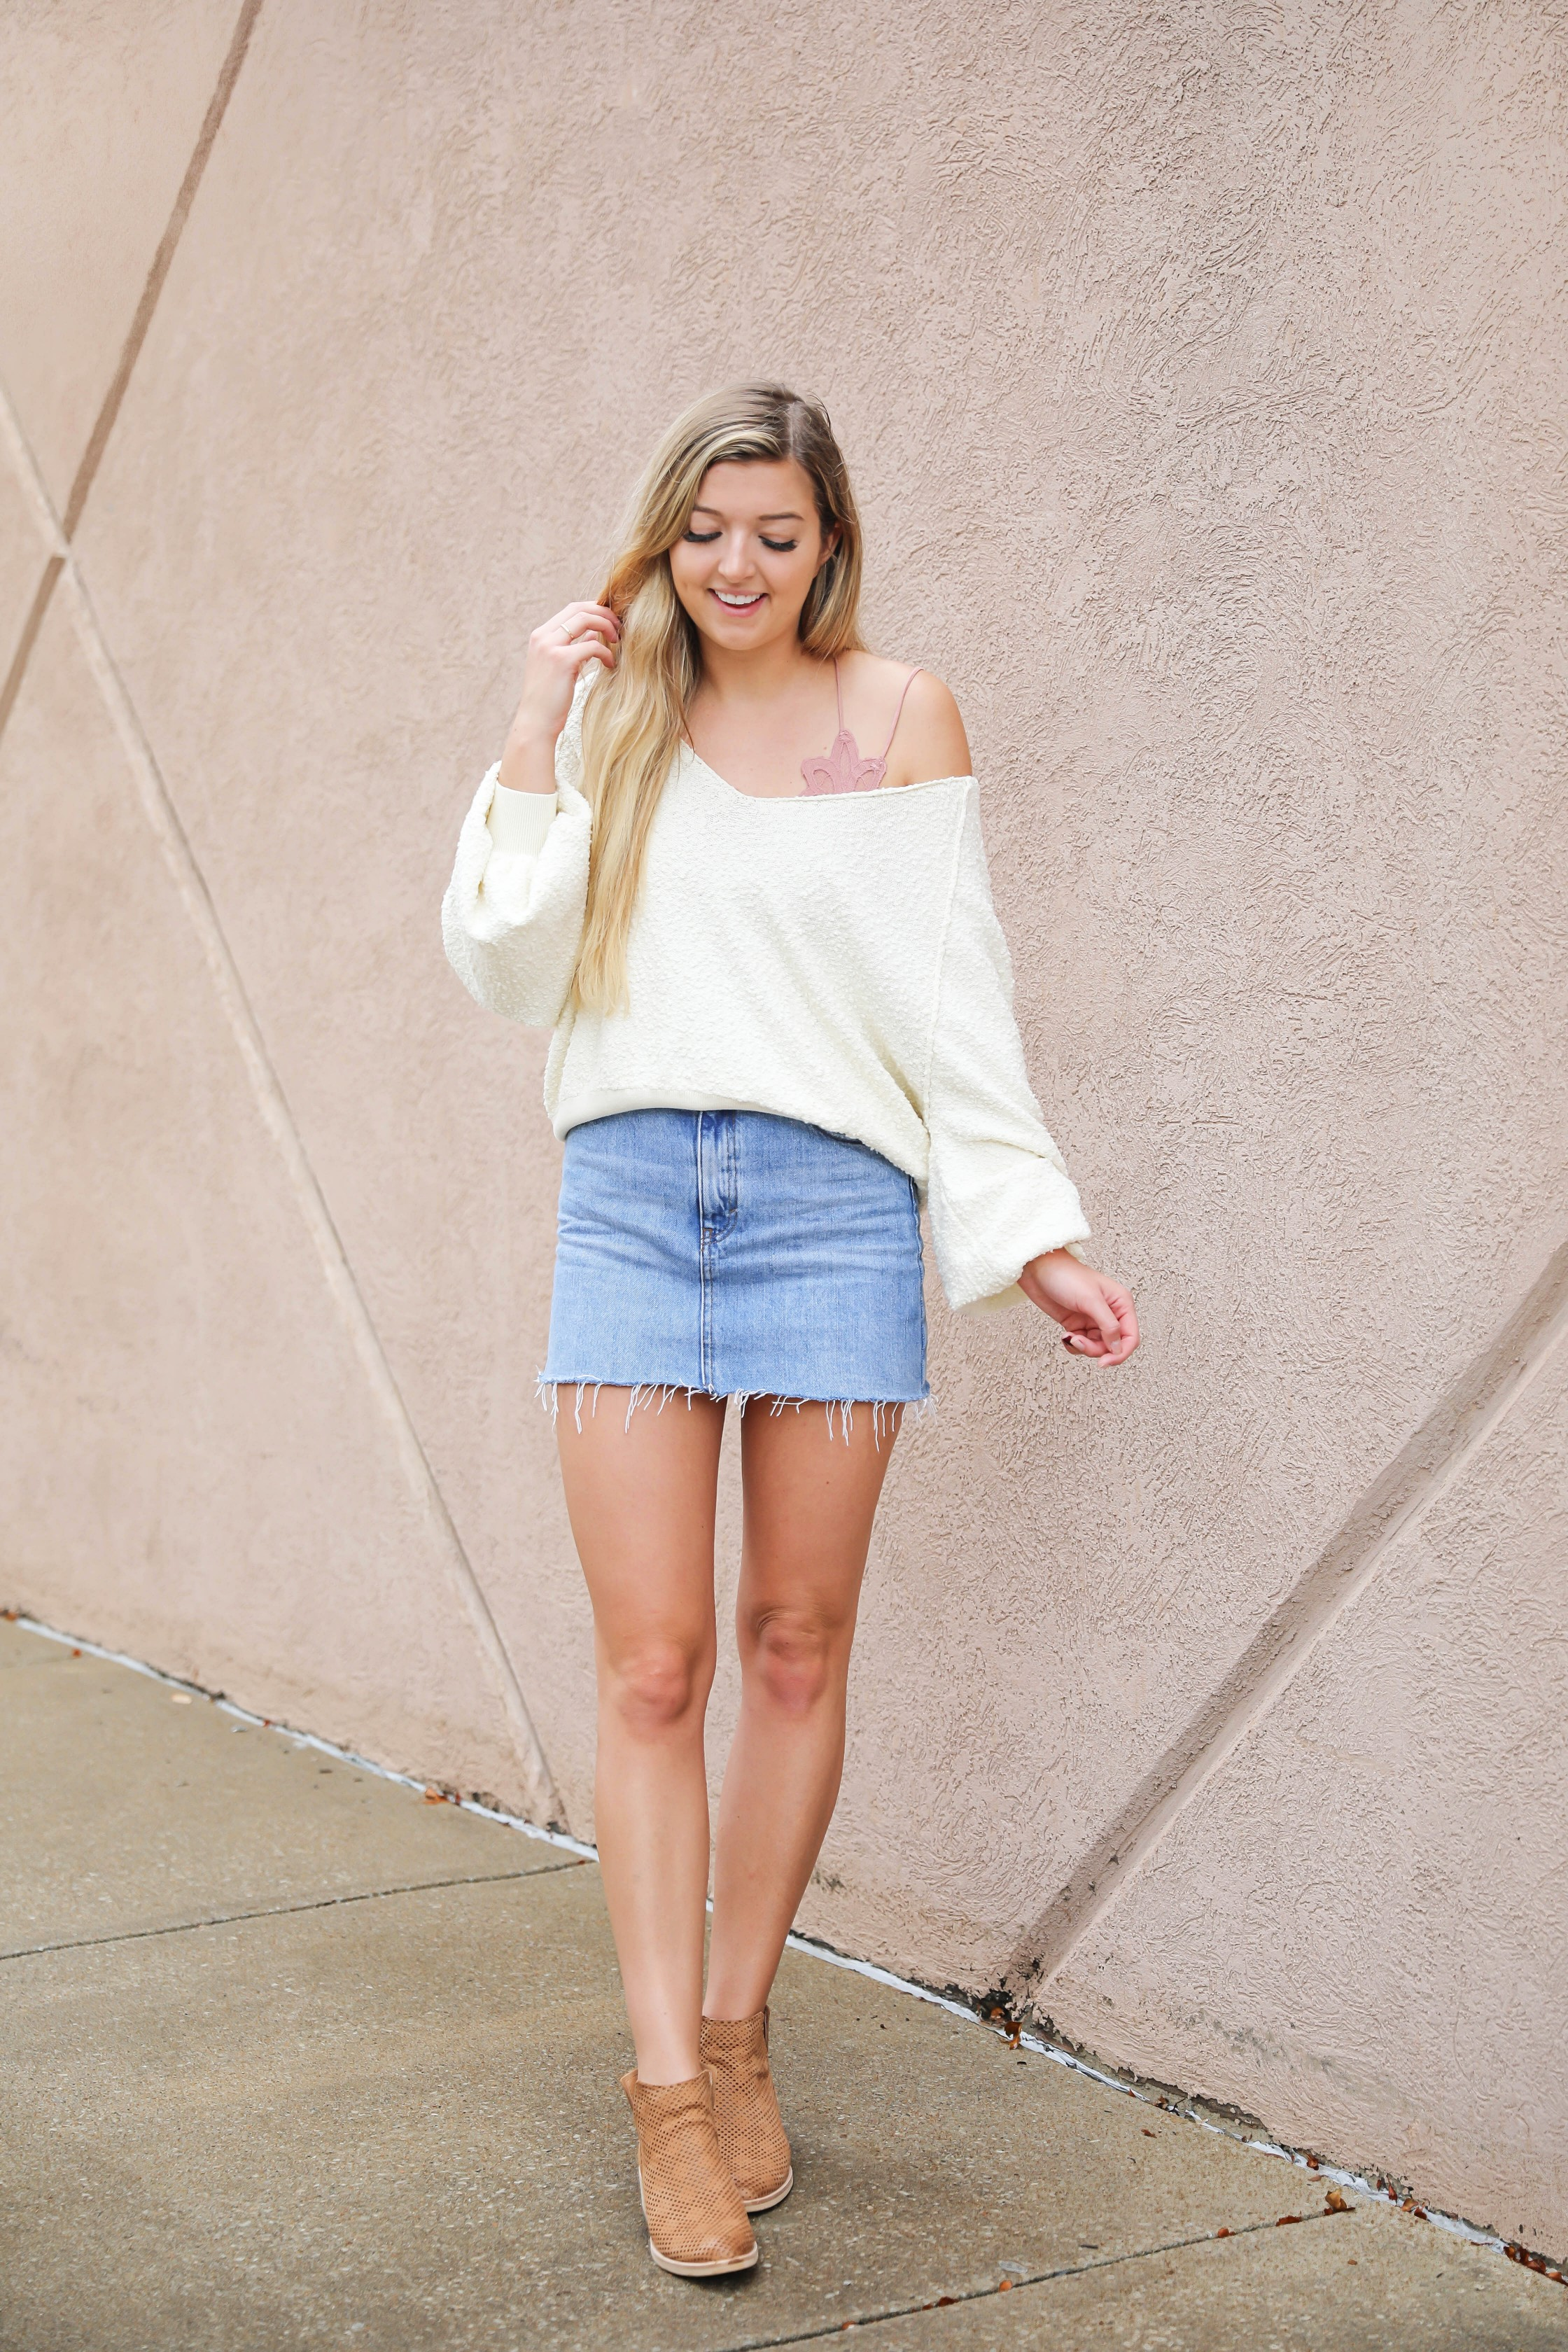 Slouchy Free People sweater that comes in cream, light blue, red, black, yellow, and pink! Paired with a Free People bralette that comes in a ton more colors! I finished this look with a cute denim jean skirt and booties from the nordstrom sale! Details on fashion blog daily dose of charm by lauren lindmark